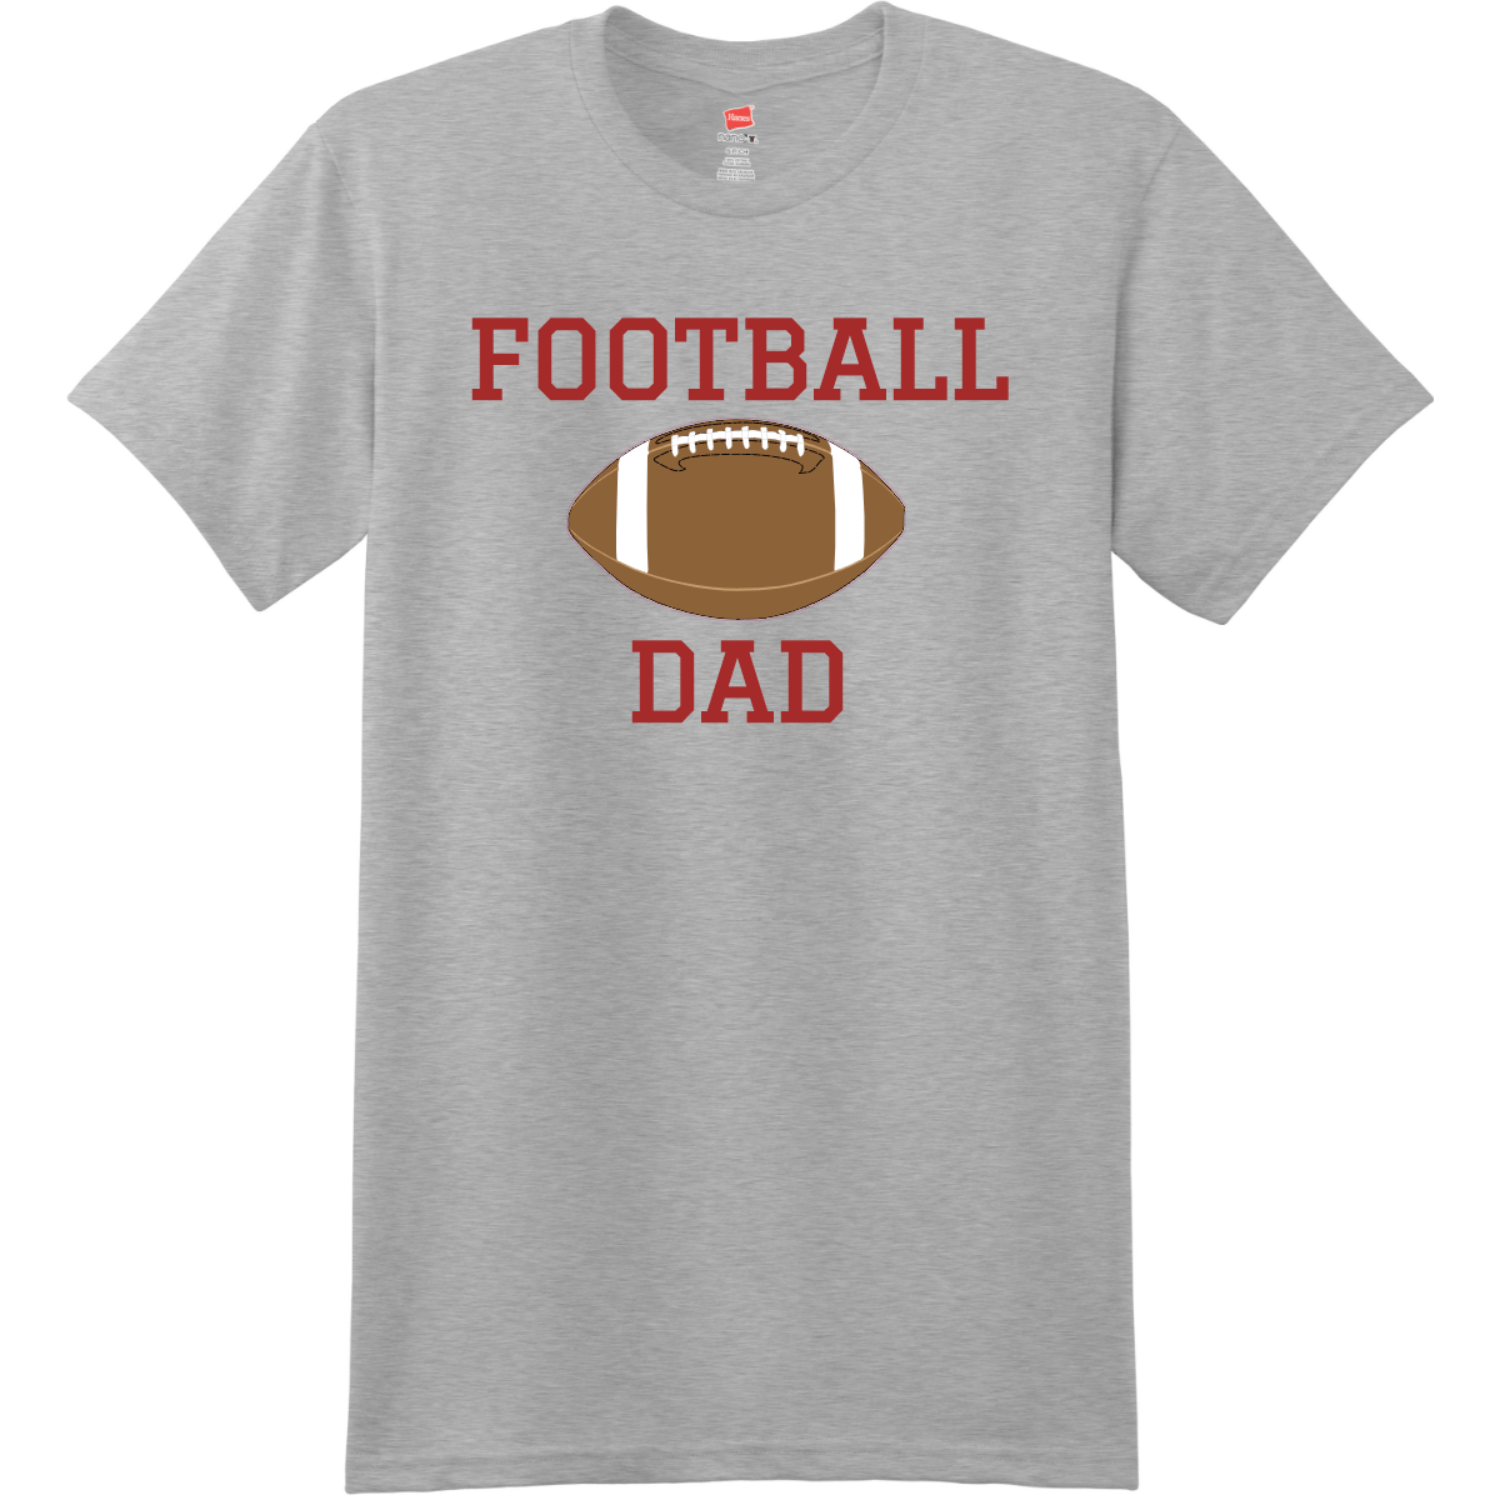 Football Dad T Shirt With Name And Number Light Steel Hanes Nano 4980 Ringspun Cotton T Shirt